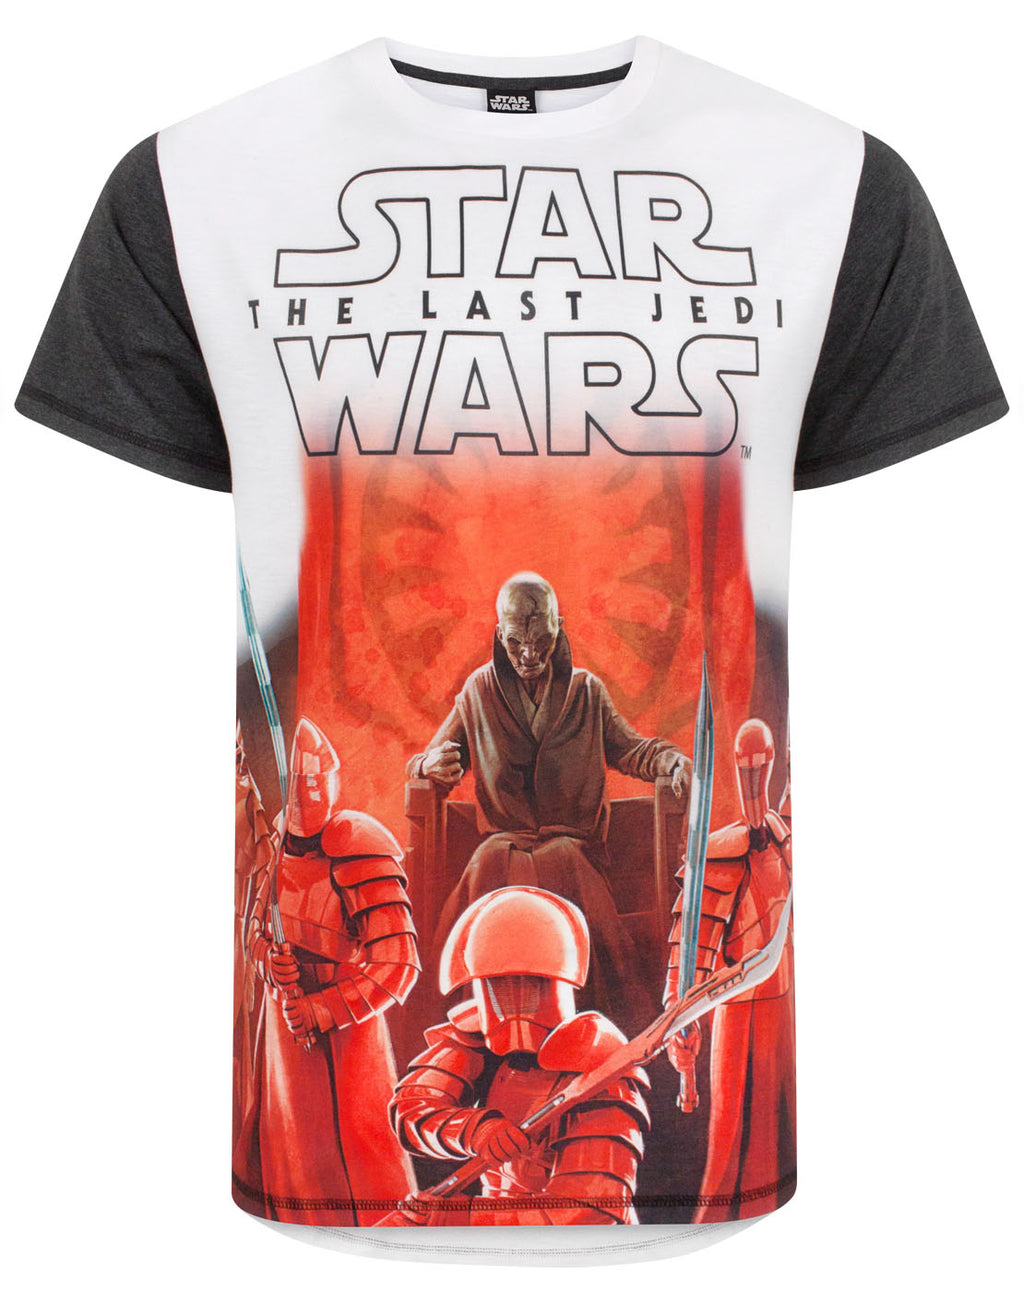 Star Wars The Last Jedi First Order Men's T-Shirt